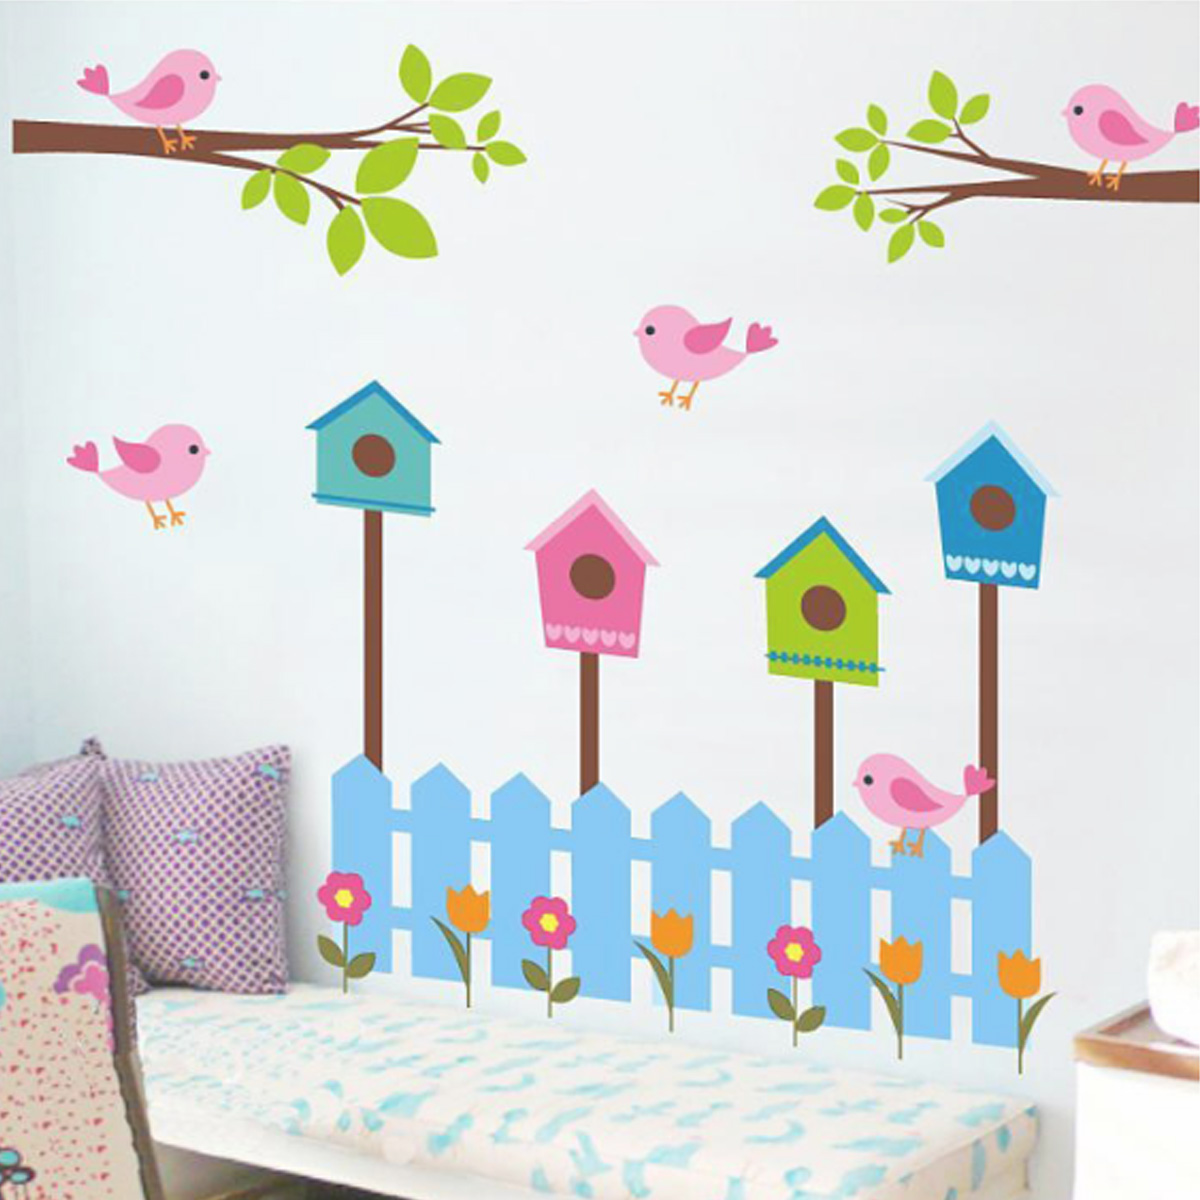 DIY Removable Decal Home Room Decor Birdcage Tree Flower Wall Sticker Wallpaper